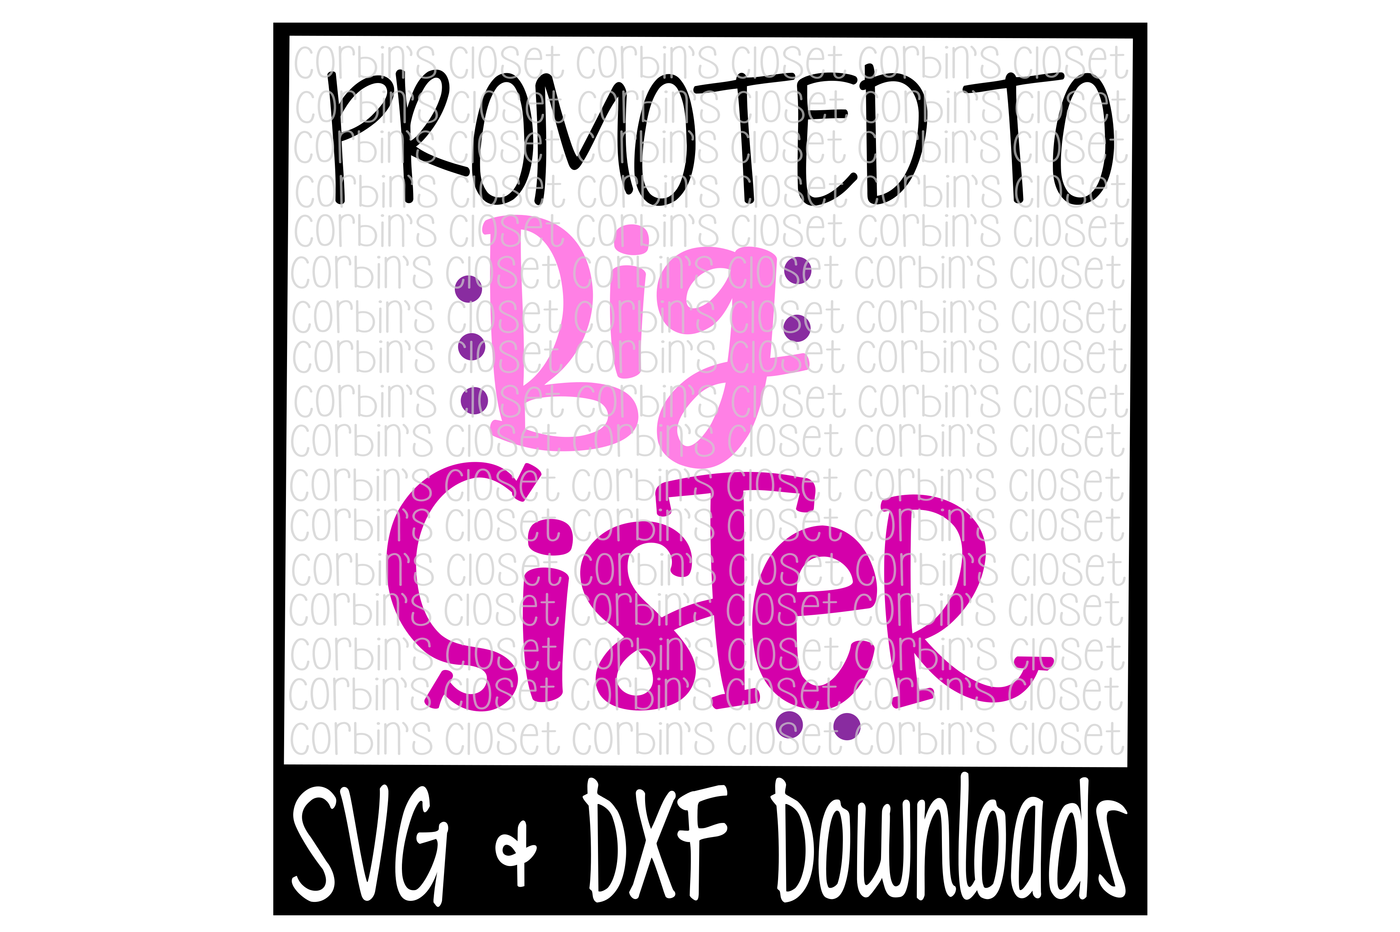 Sister svg. Big promoted to cut